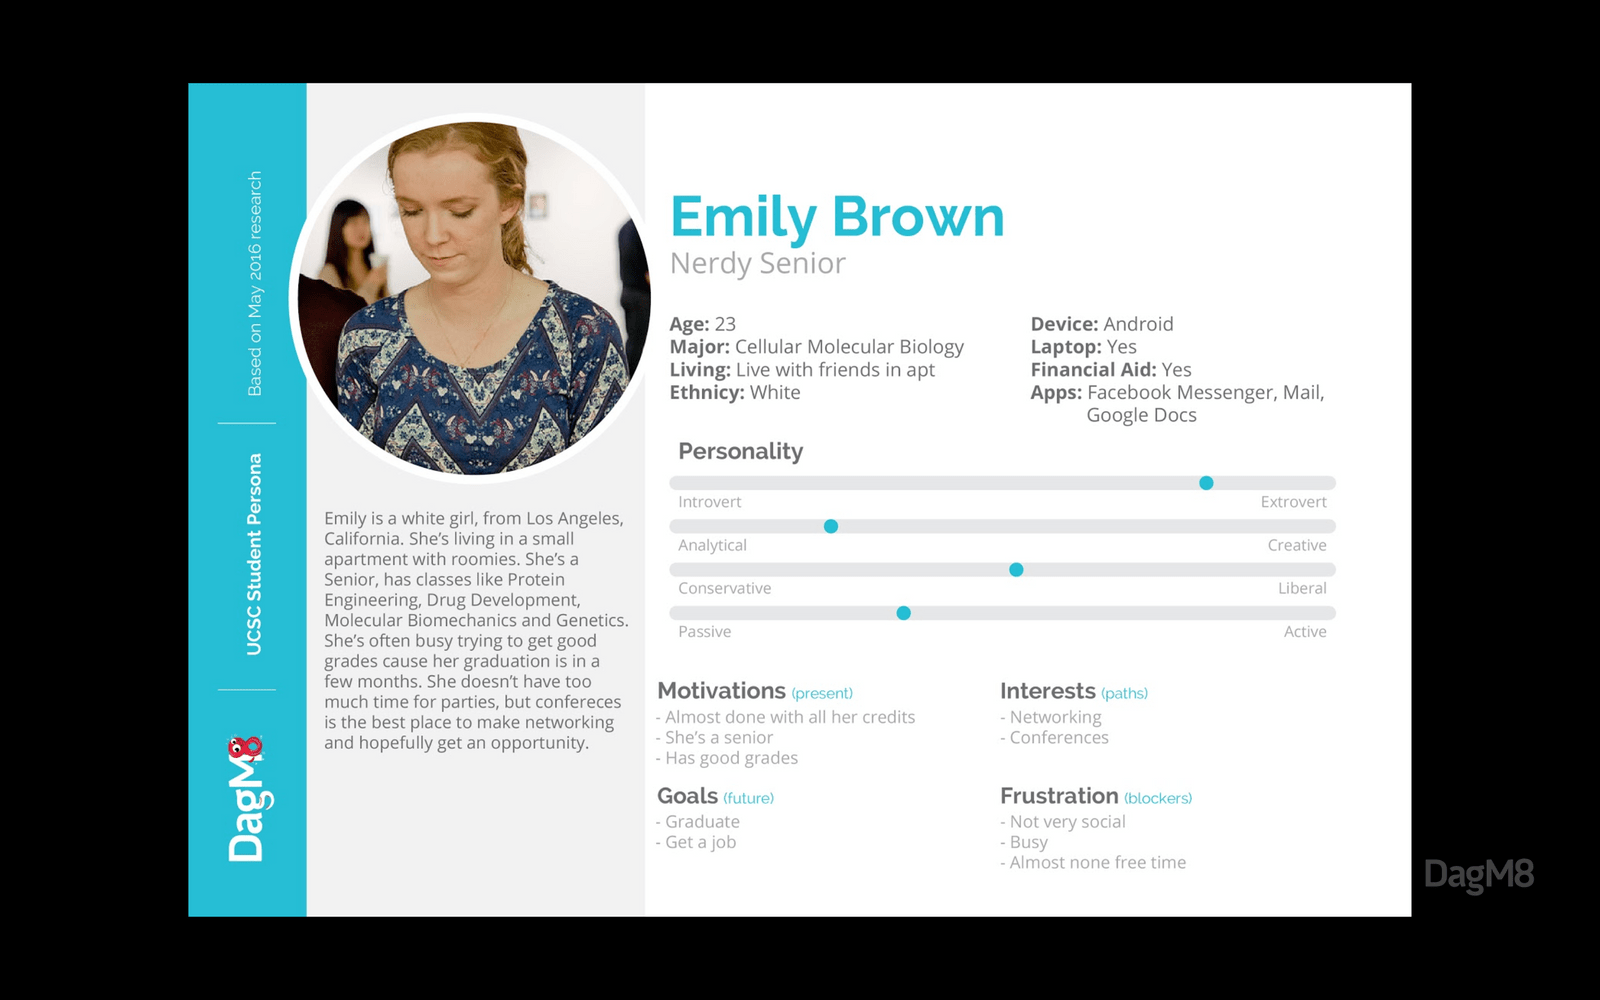 Emily, one of our personas